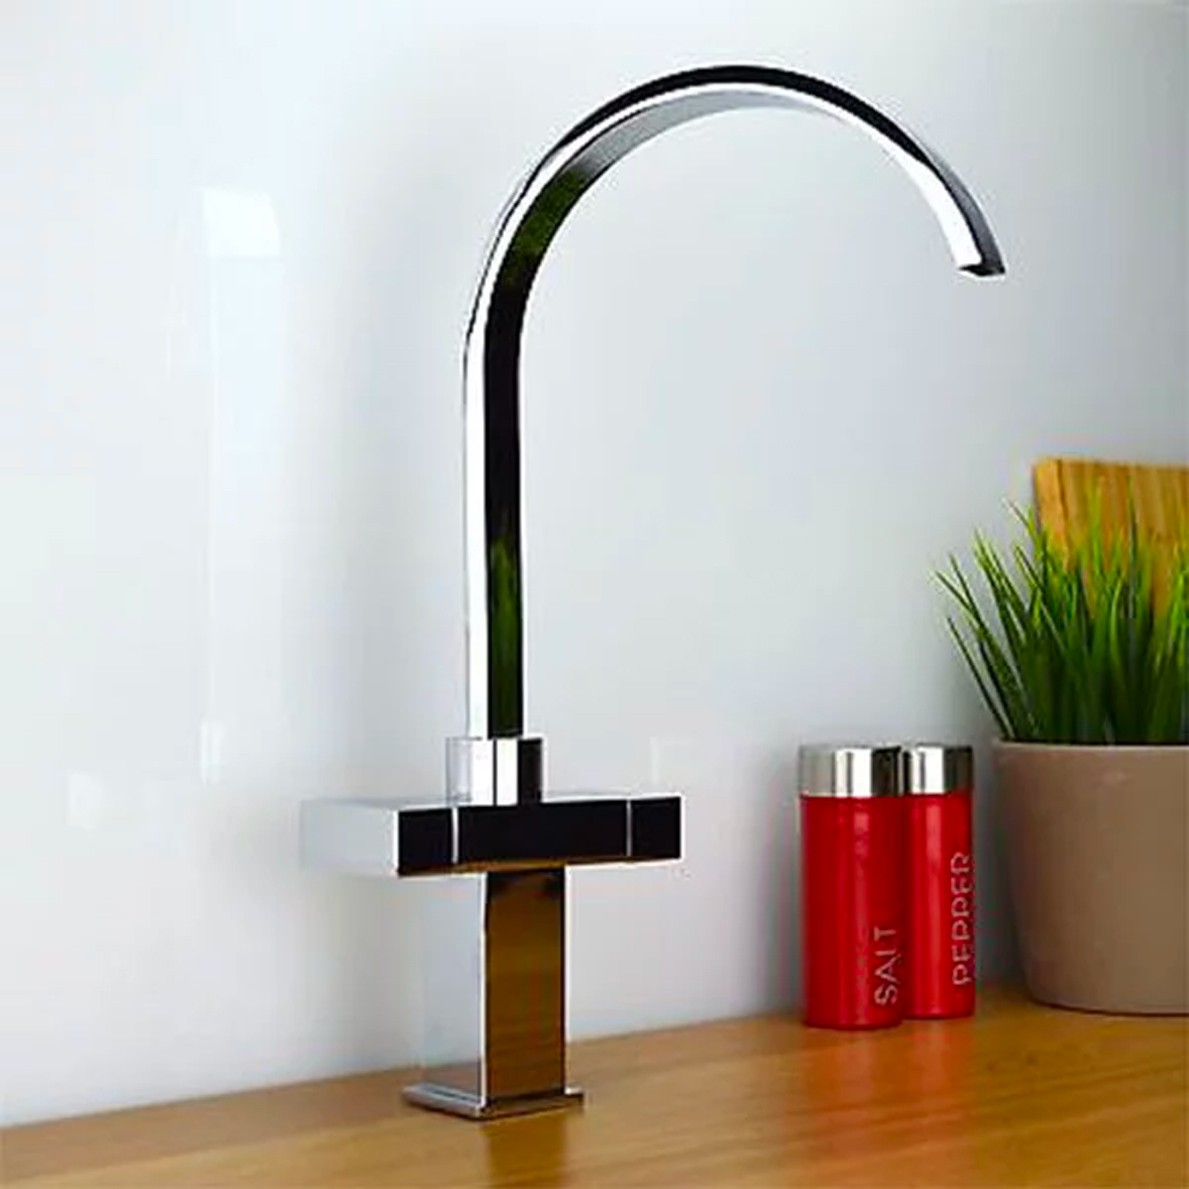 View our range of taps